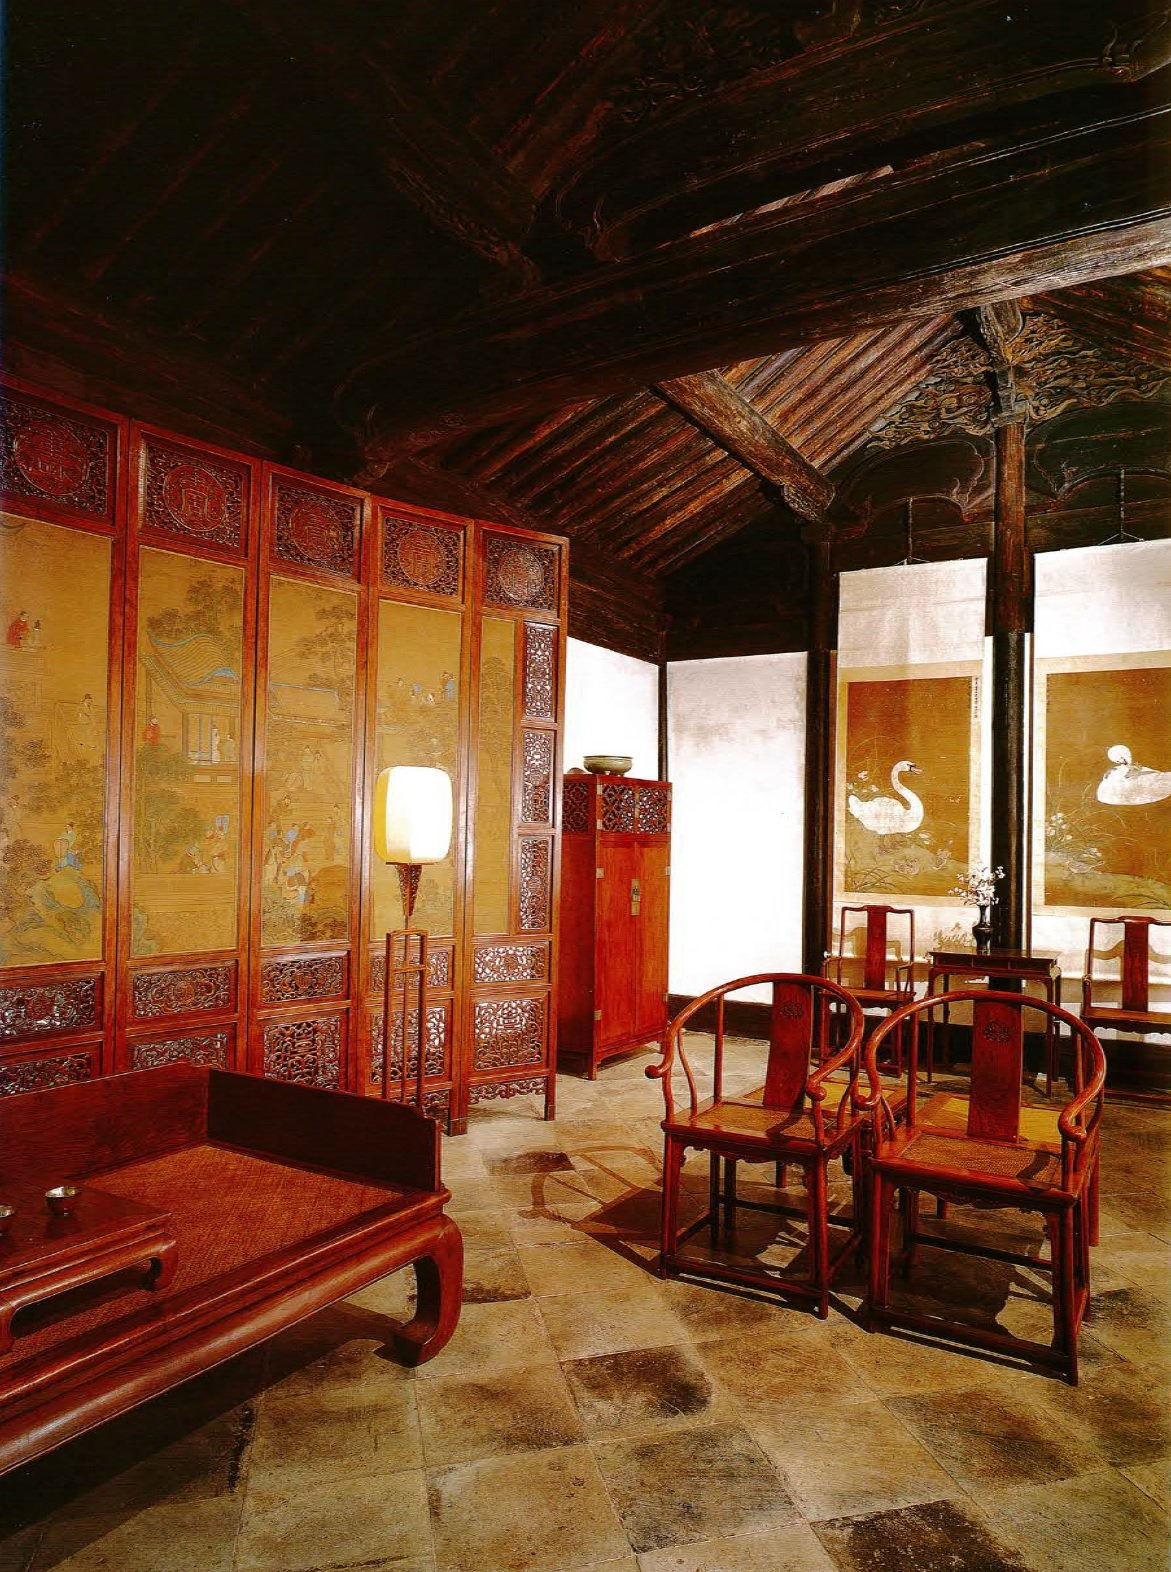 Chinese Antique Furniture Los Angeles Awesome China Style Amazon Sharon Leece Michael Freeman Bƒ¼cher